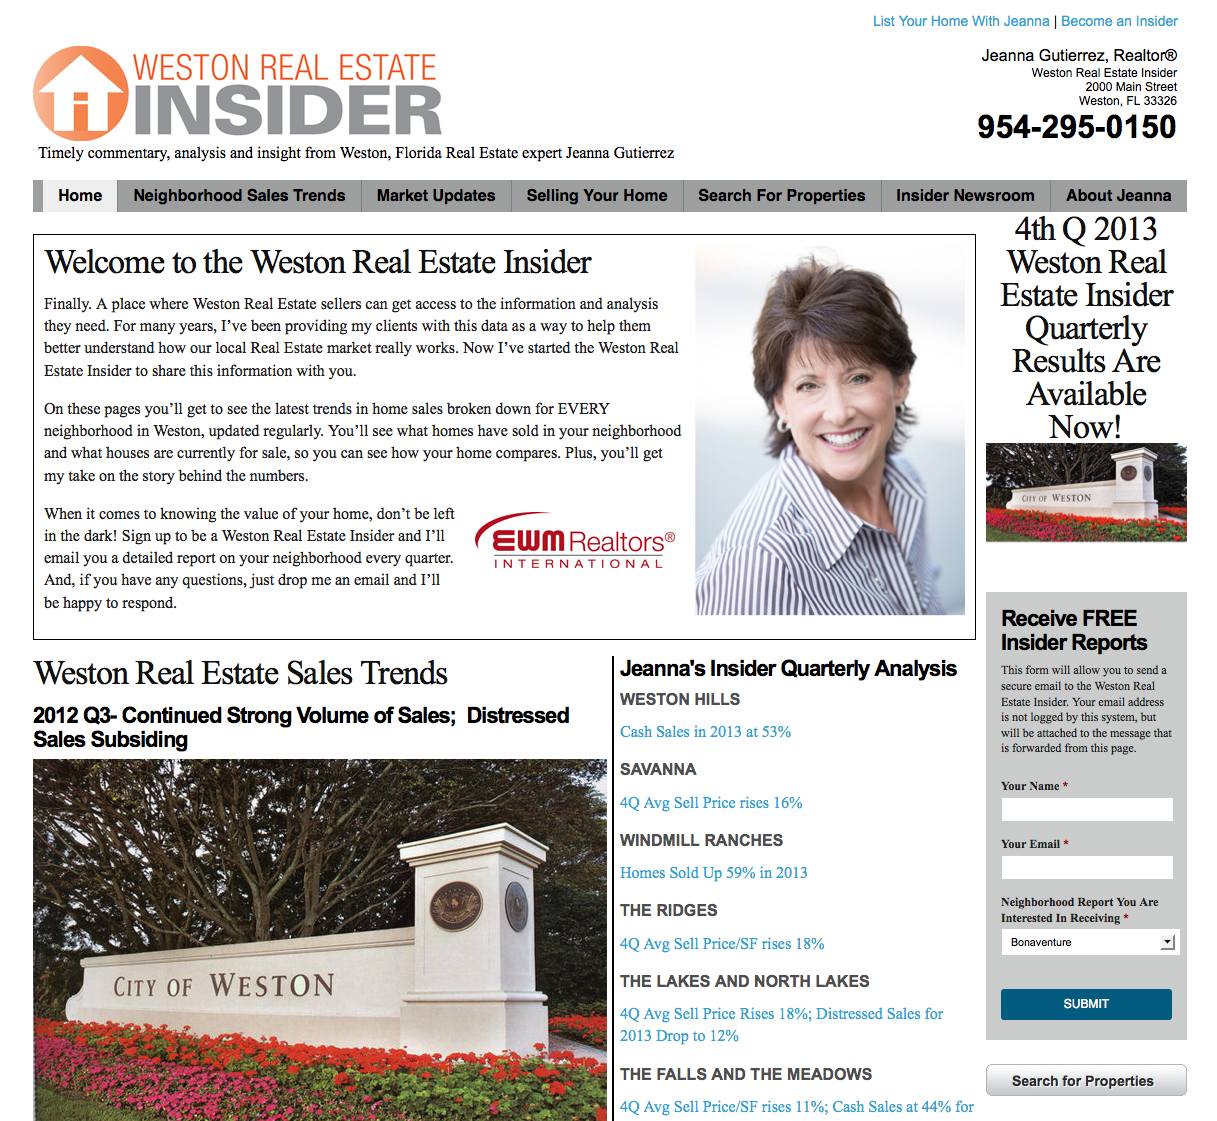 Weston Real Estate Insider